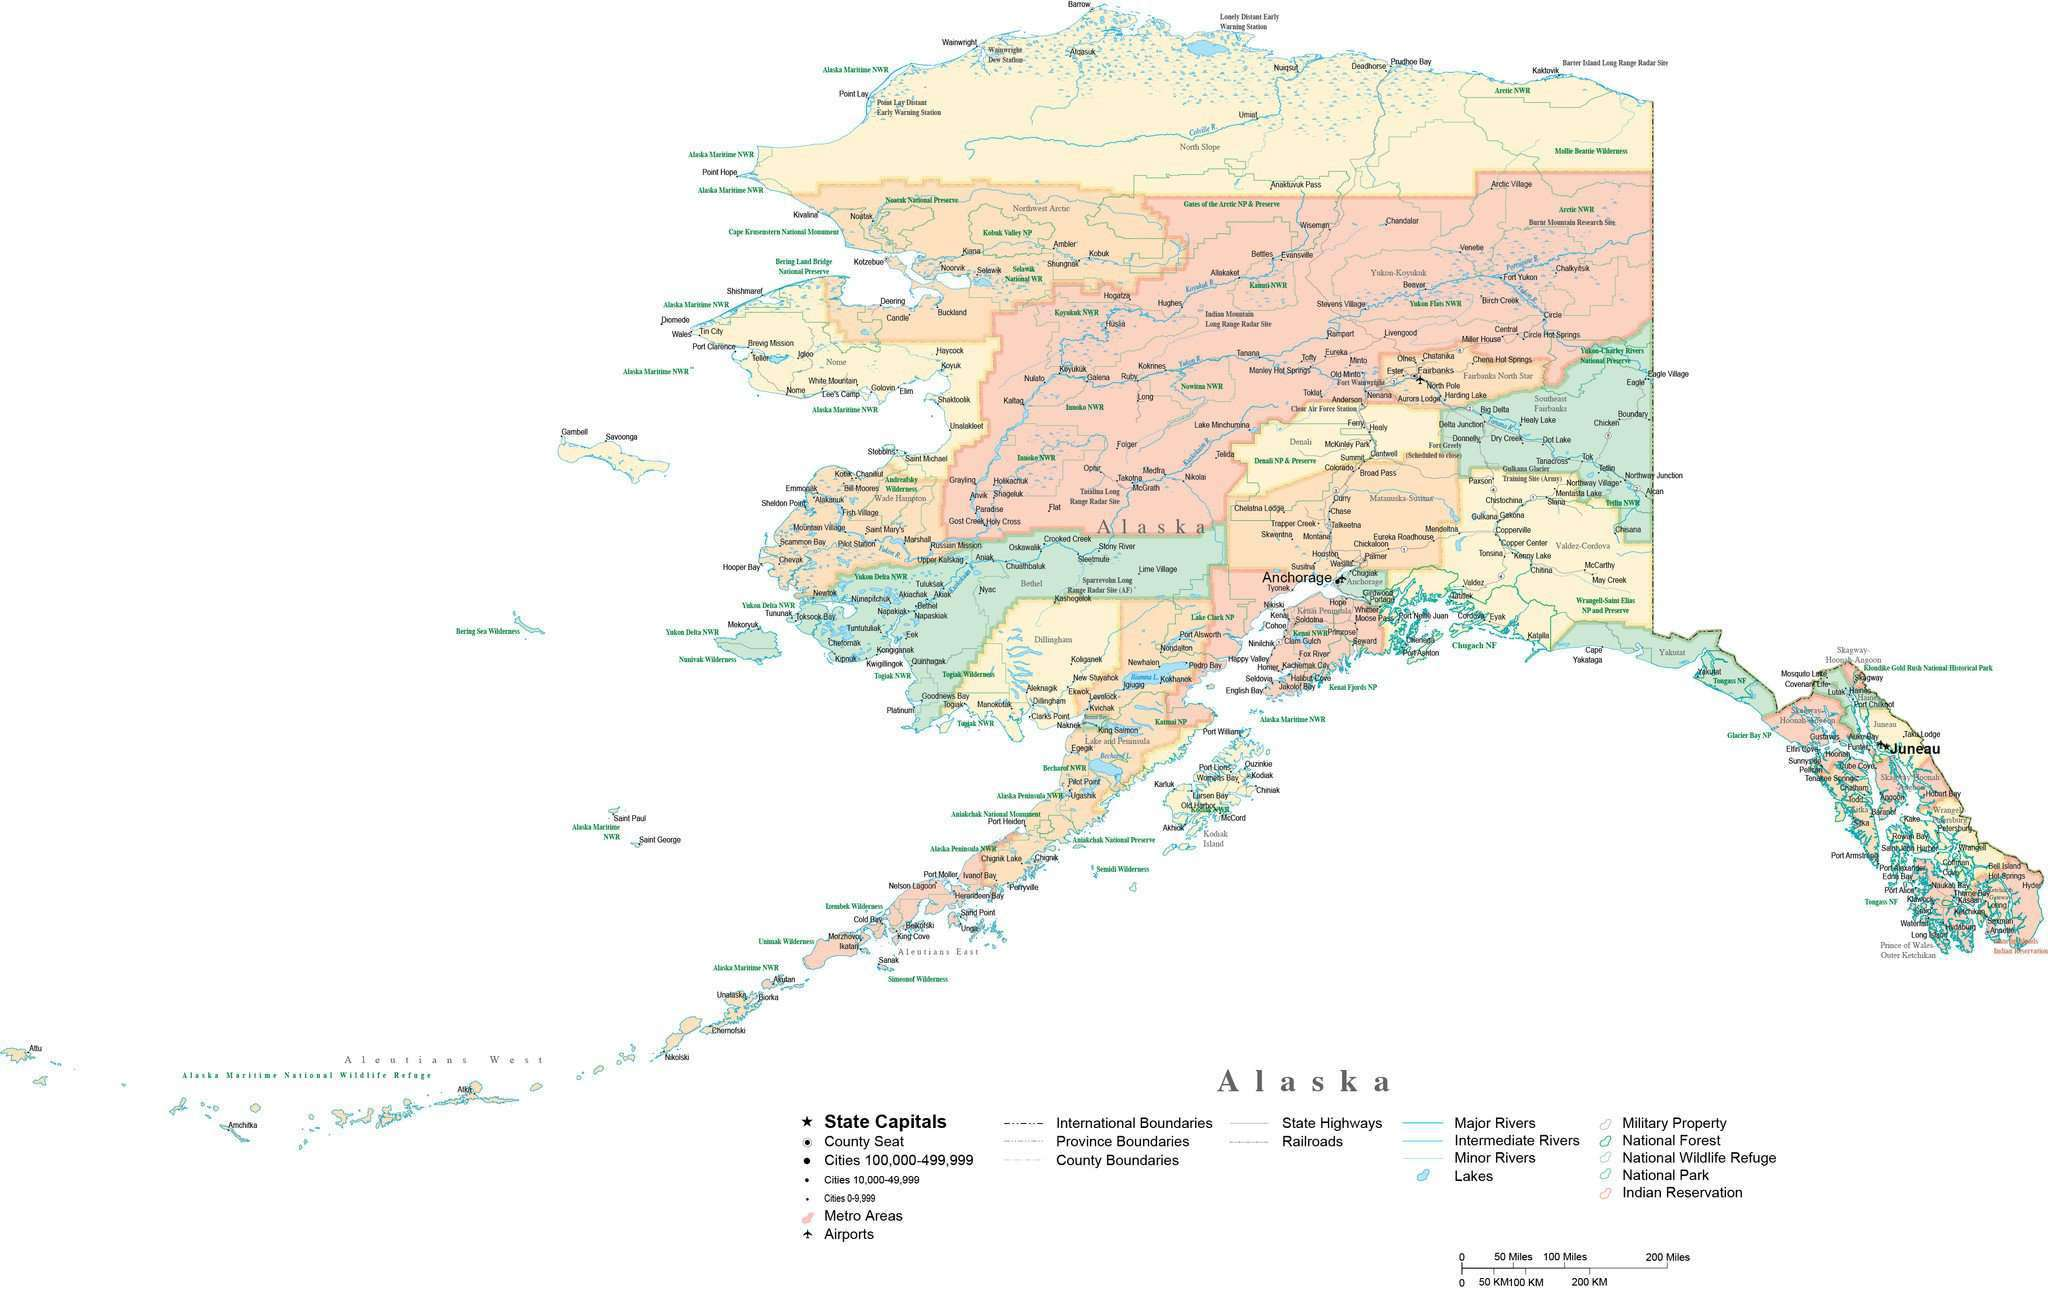 Detailed Alaska Cut-Out Style Digital Map with Counties, Cities, Highways, on map of caribbean cities, map of canada cities, map of mediterranean cities, map of american cities, map of chinese cities, map of afghanistan cities, map of cherokee cities, map of western cities, map of finland cities, map of broward cities, map of viking cities, map of russian cities,